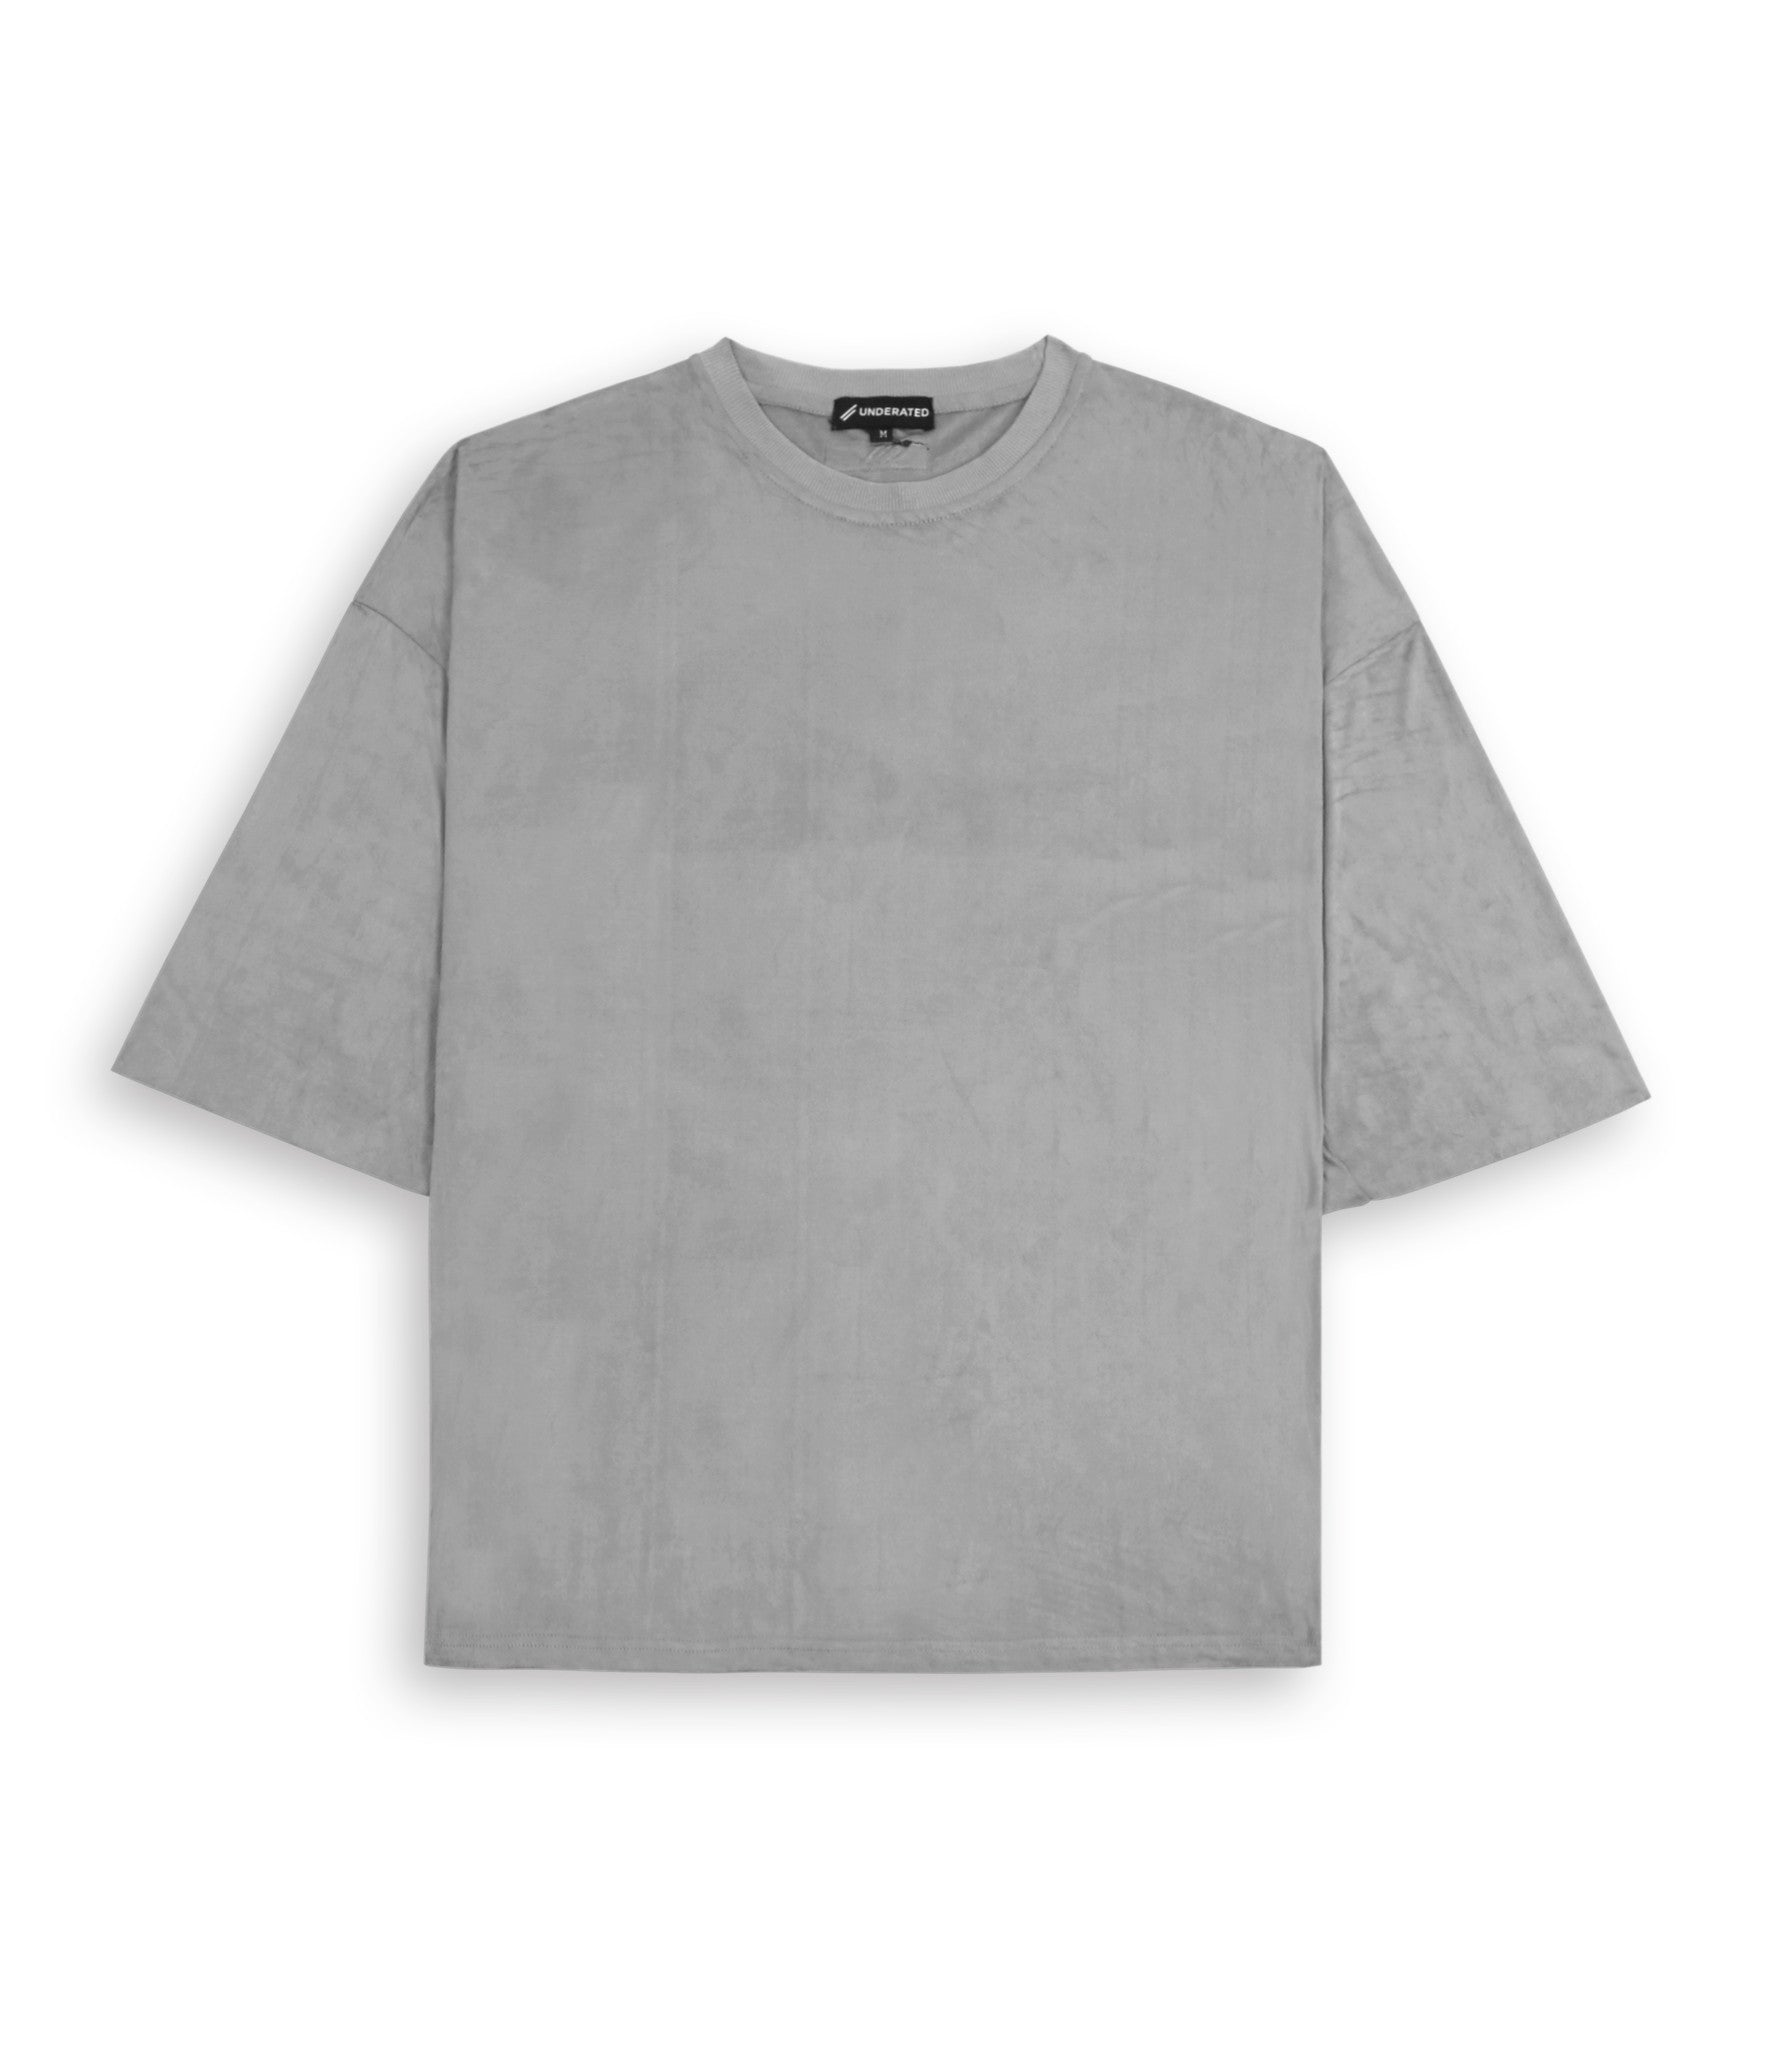 TS302 Suede Oversized Box Tee - Smokey Grey - underated london - underatedco - 2